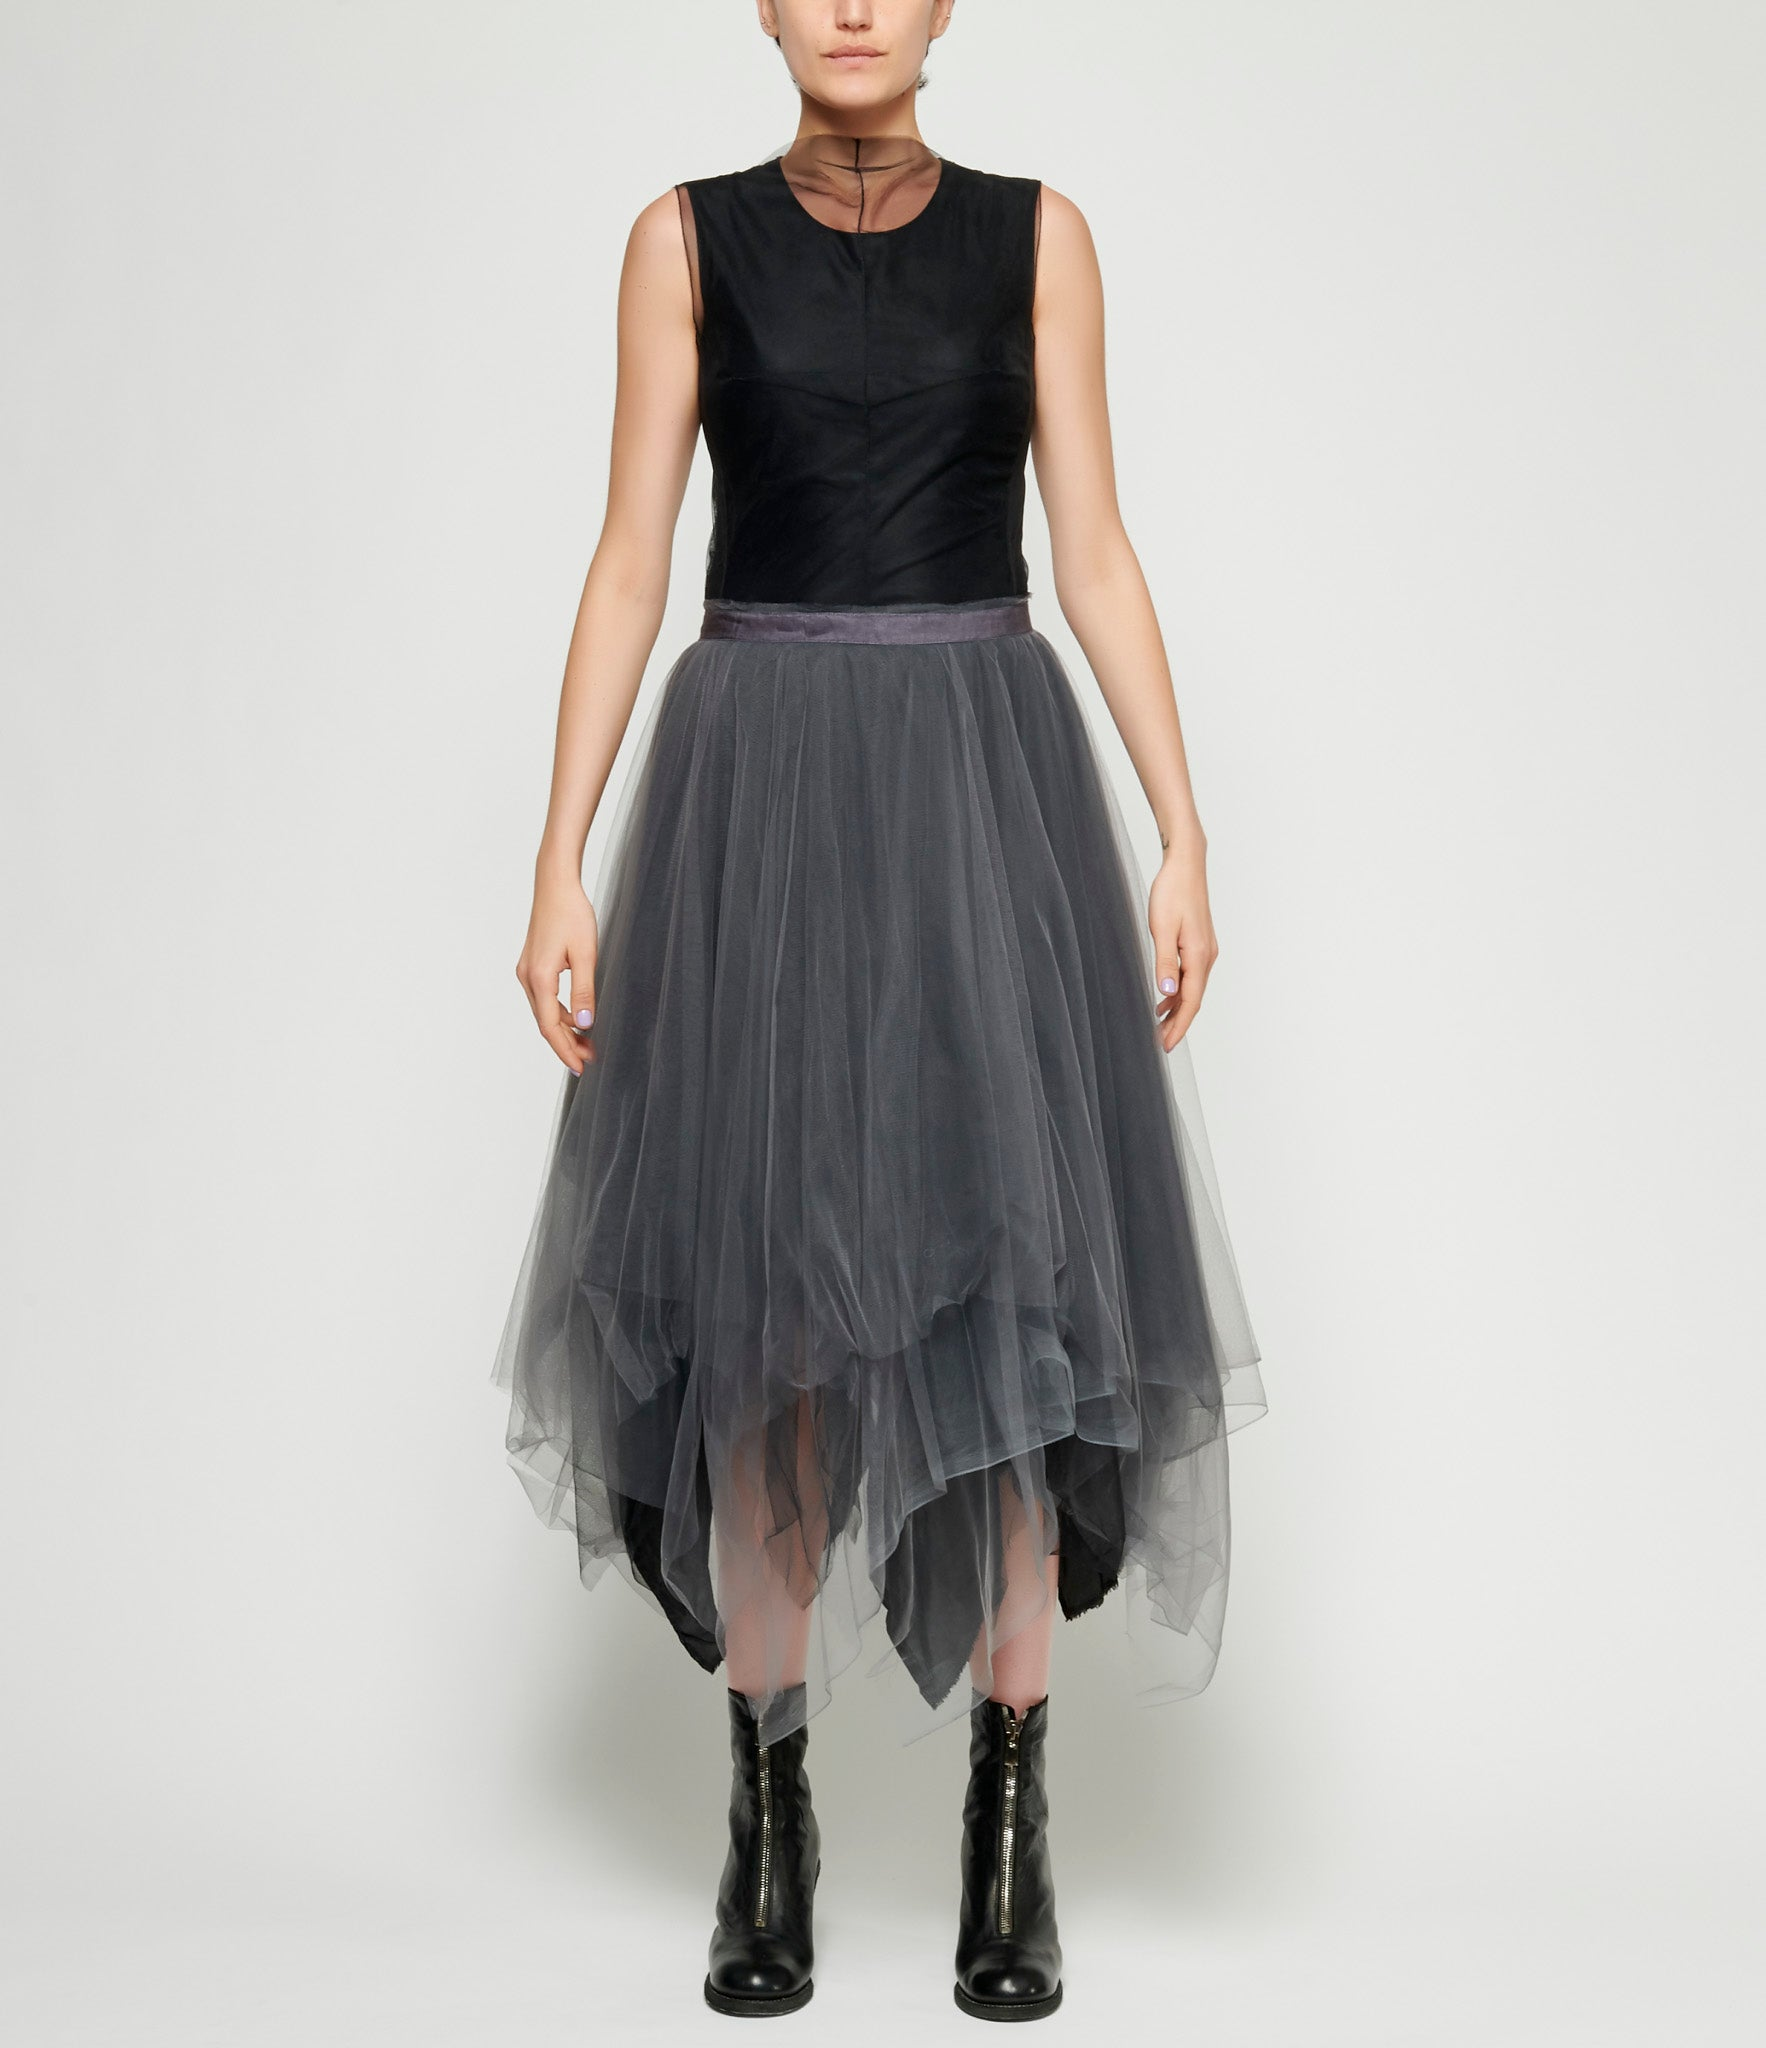 Marc Le Bihan Alternating 6 Layered Grey & Black Tulle Skirt